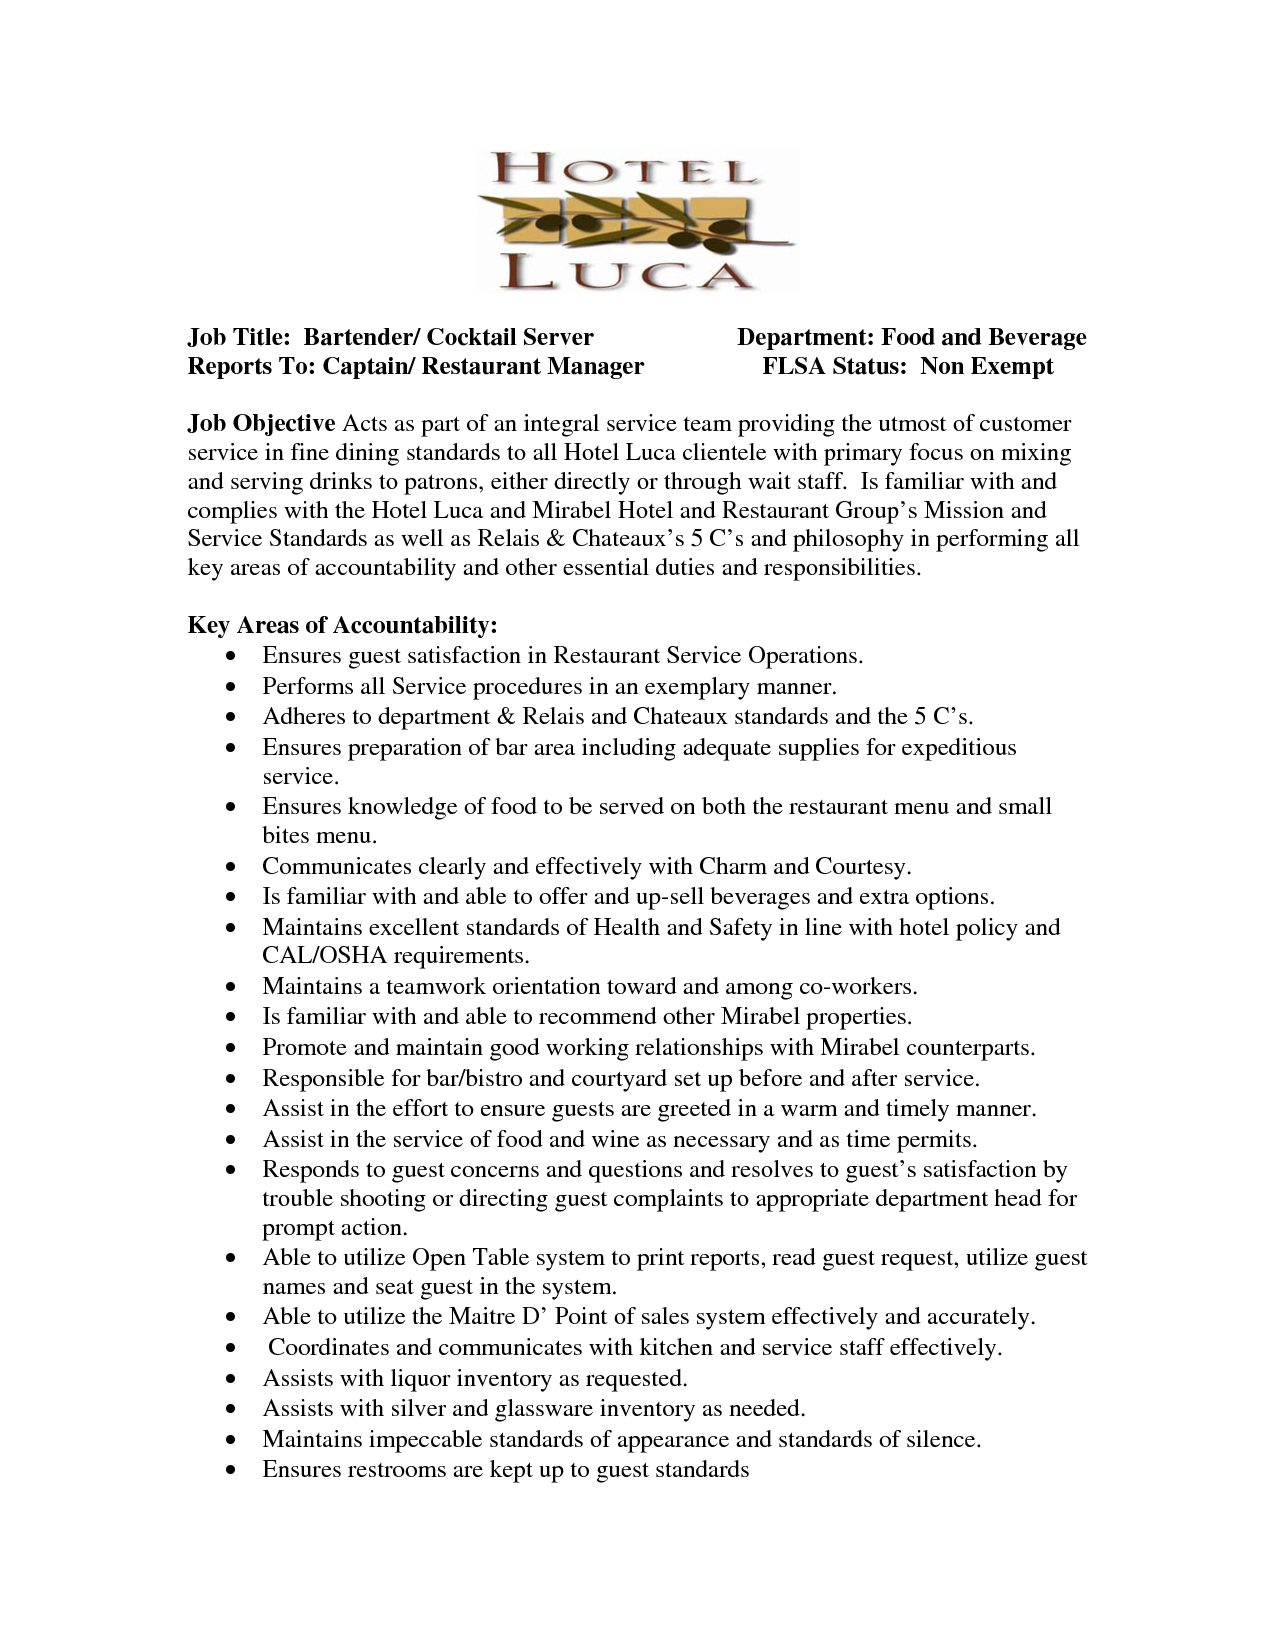 Server Resume Job Title Bartender Cocktail Department Food Waitress Description For